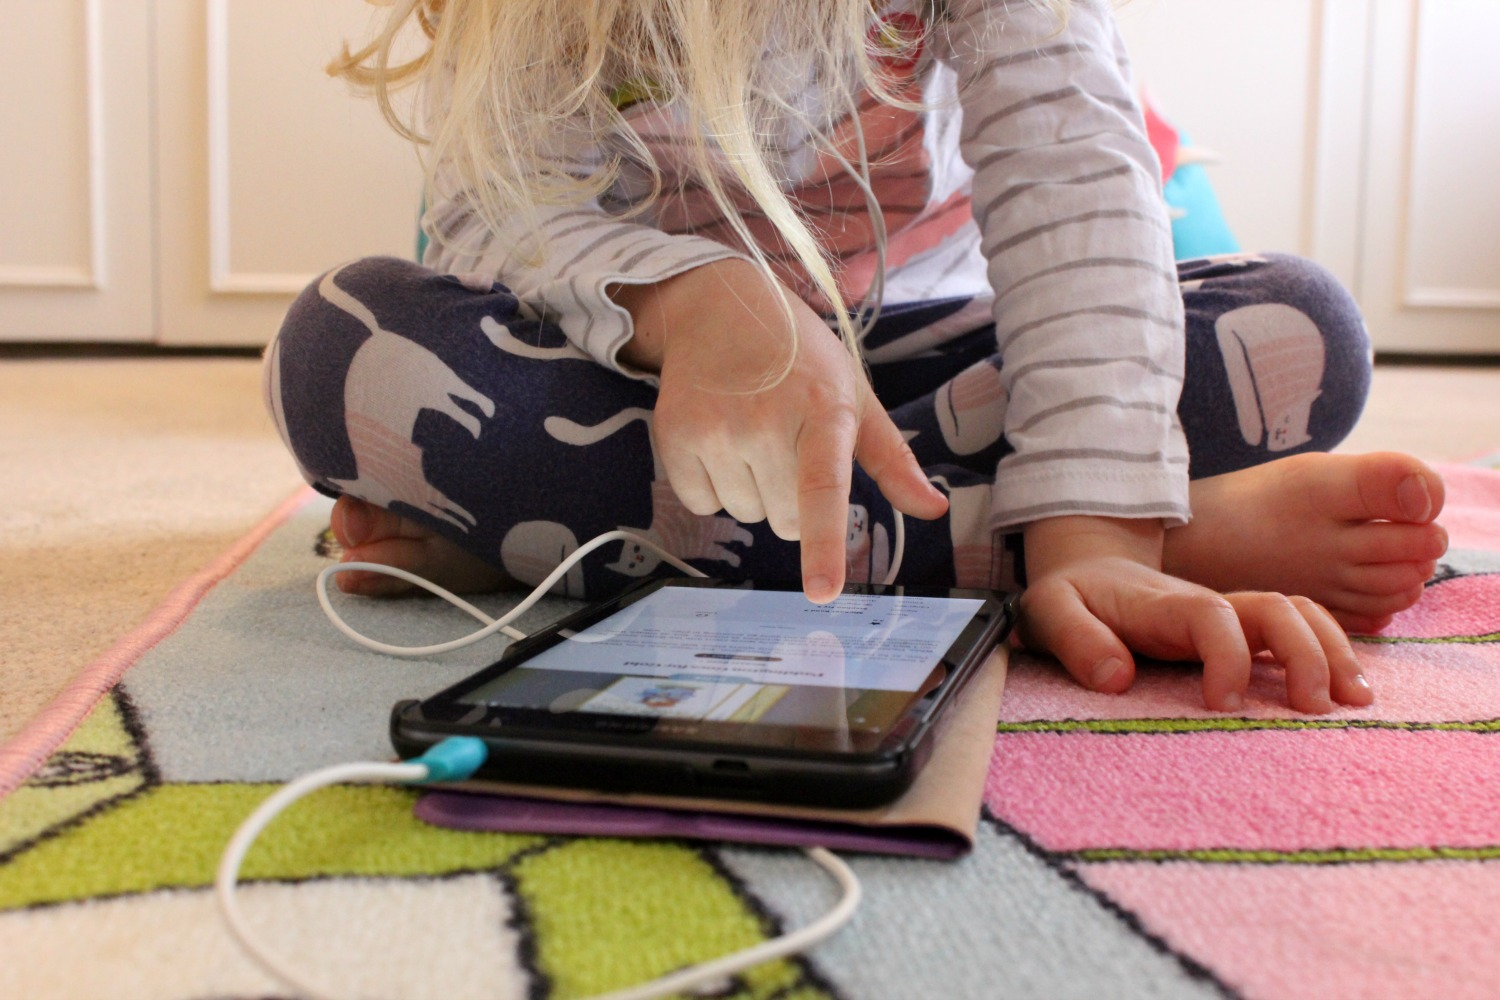 My daughter finding a story on the BookBeat app on a tablet